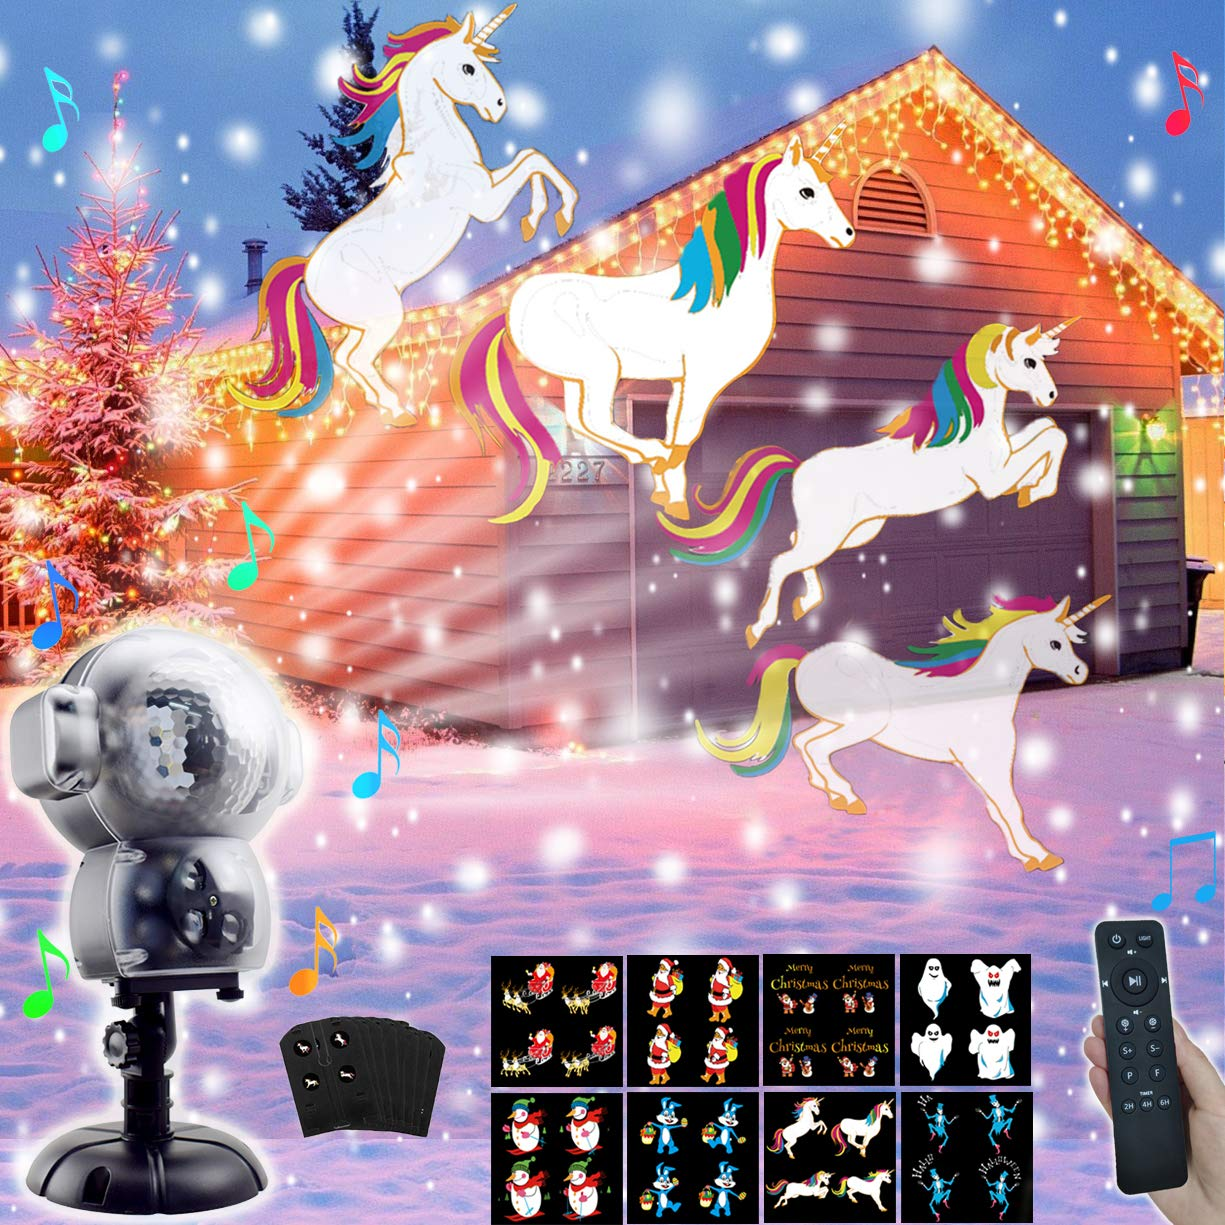 AIDERLY Halloween Christmas Music 8 Patterns Snow Projector LED Lights Indoor Outdoor Animated Rotating Snowfall Light with Remote for Landscape Xmas Decorations Stage Holiday Wedding Birthday Party by AIDERLY